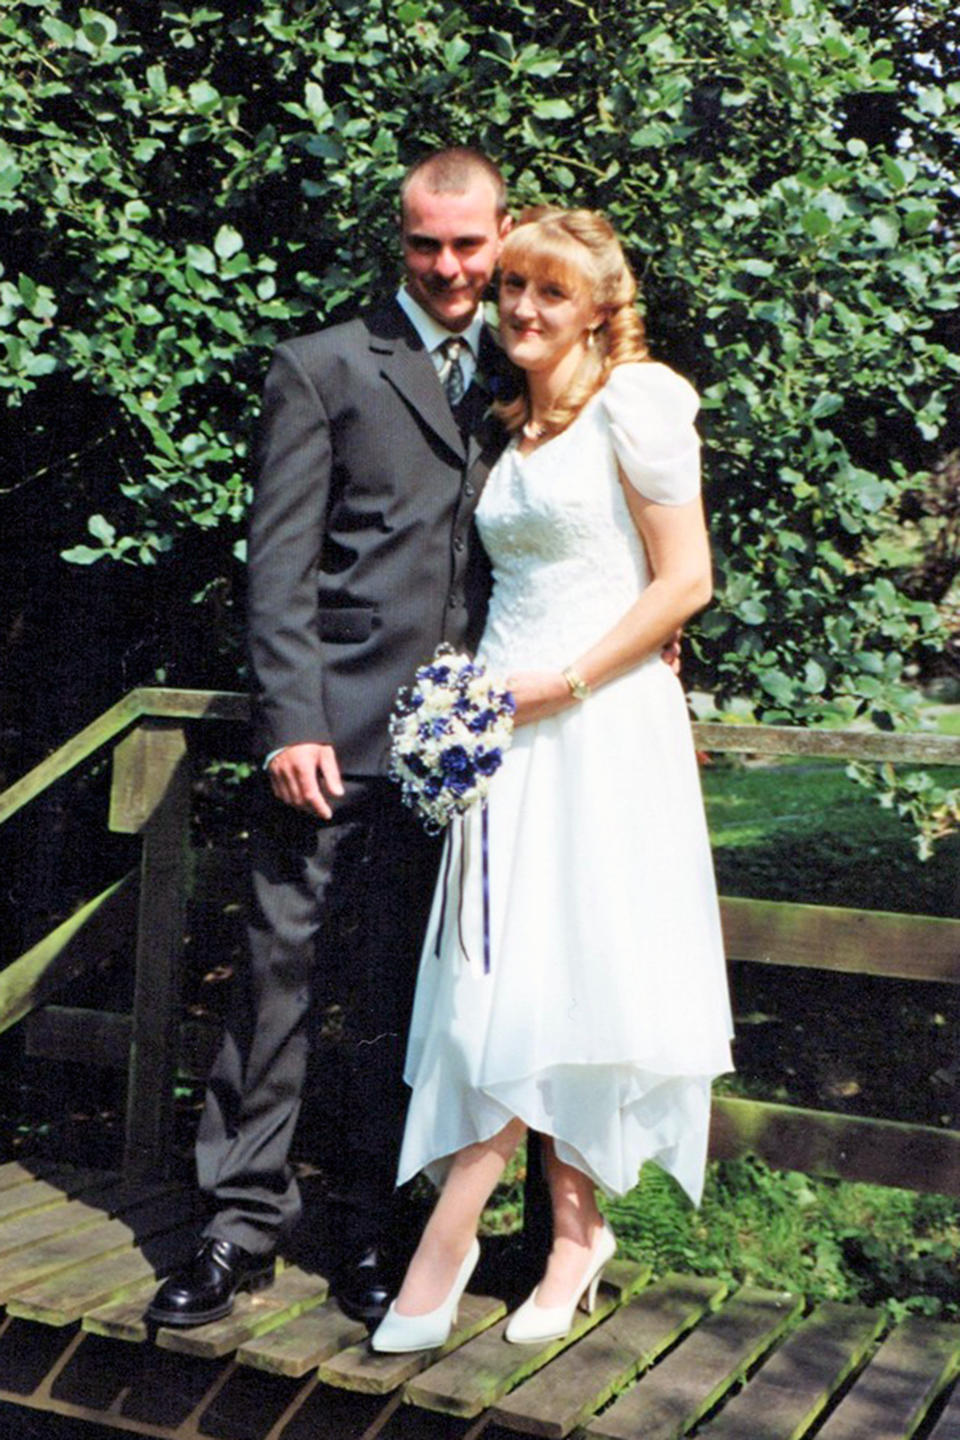 Grace's mum and dad on their wedding day back in 1998 [Photo: Caters]